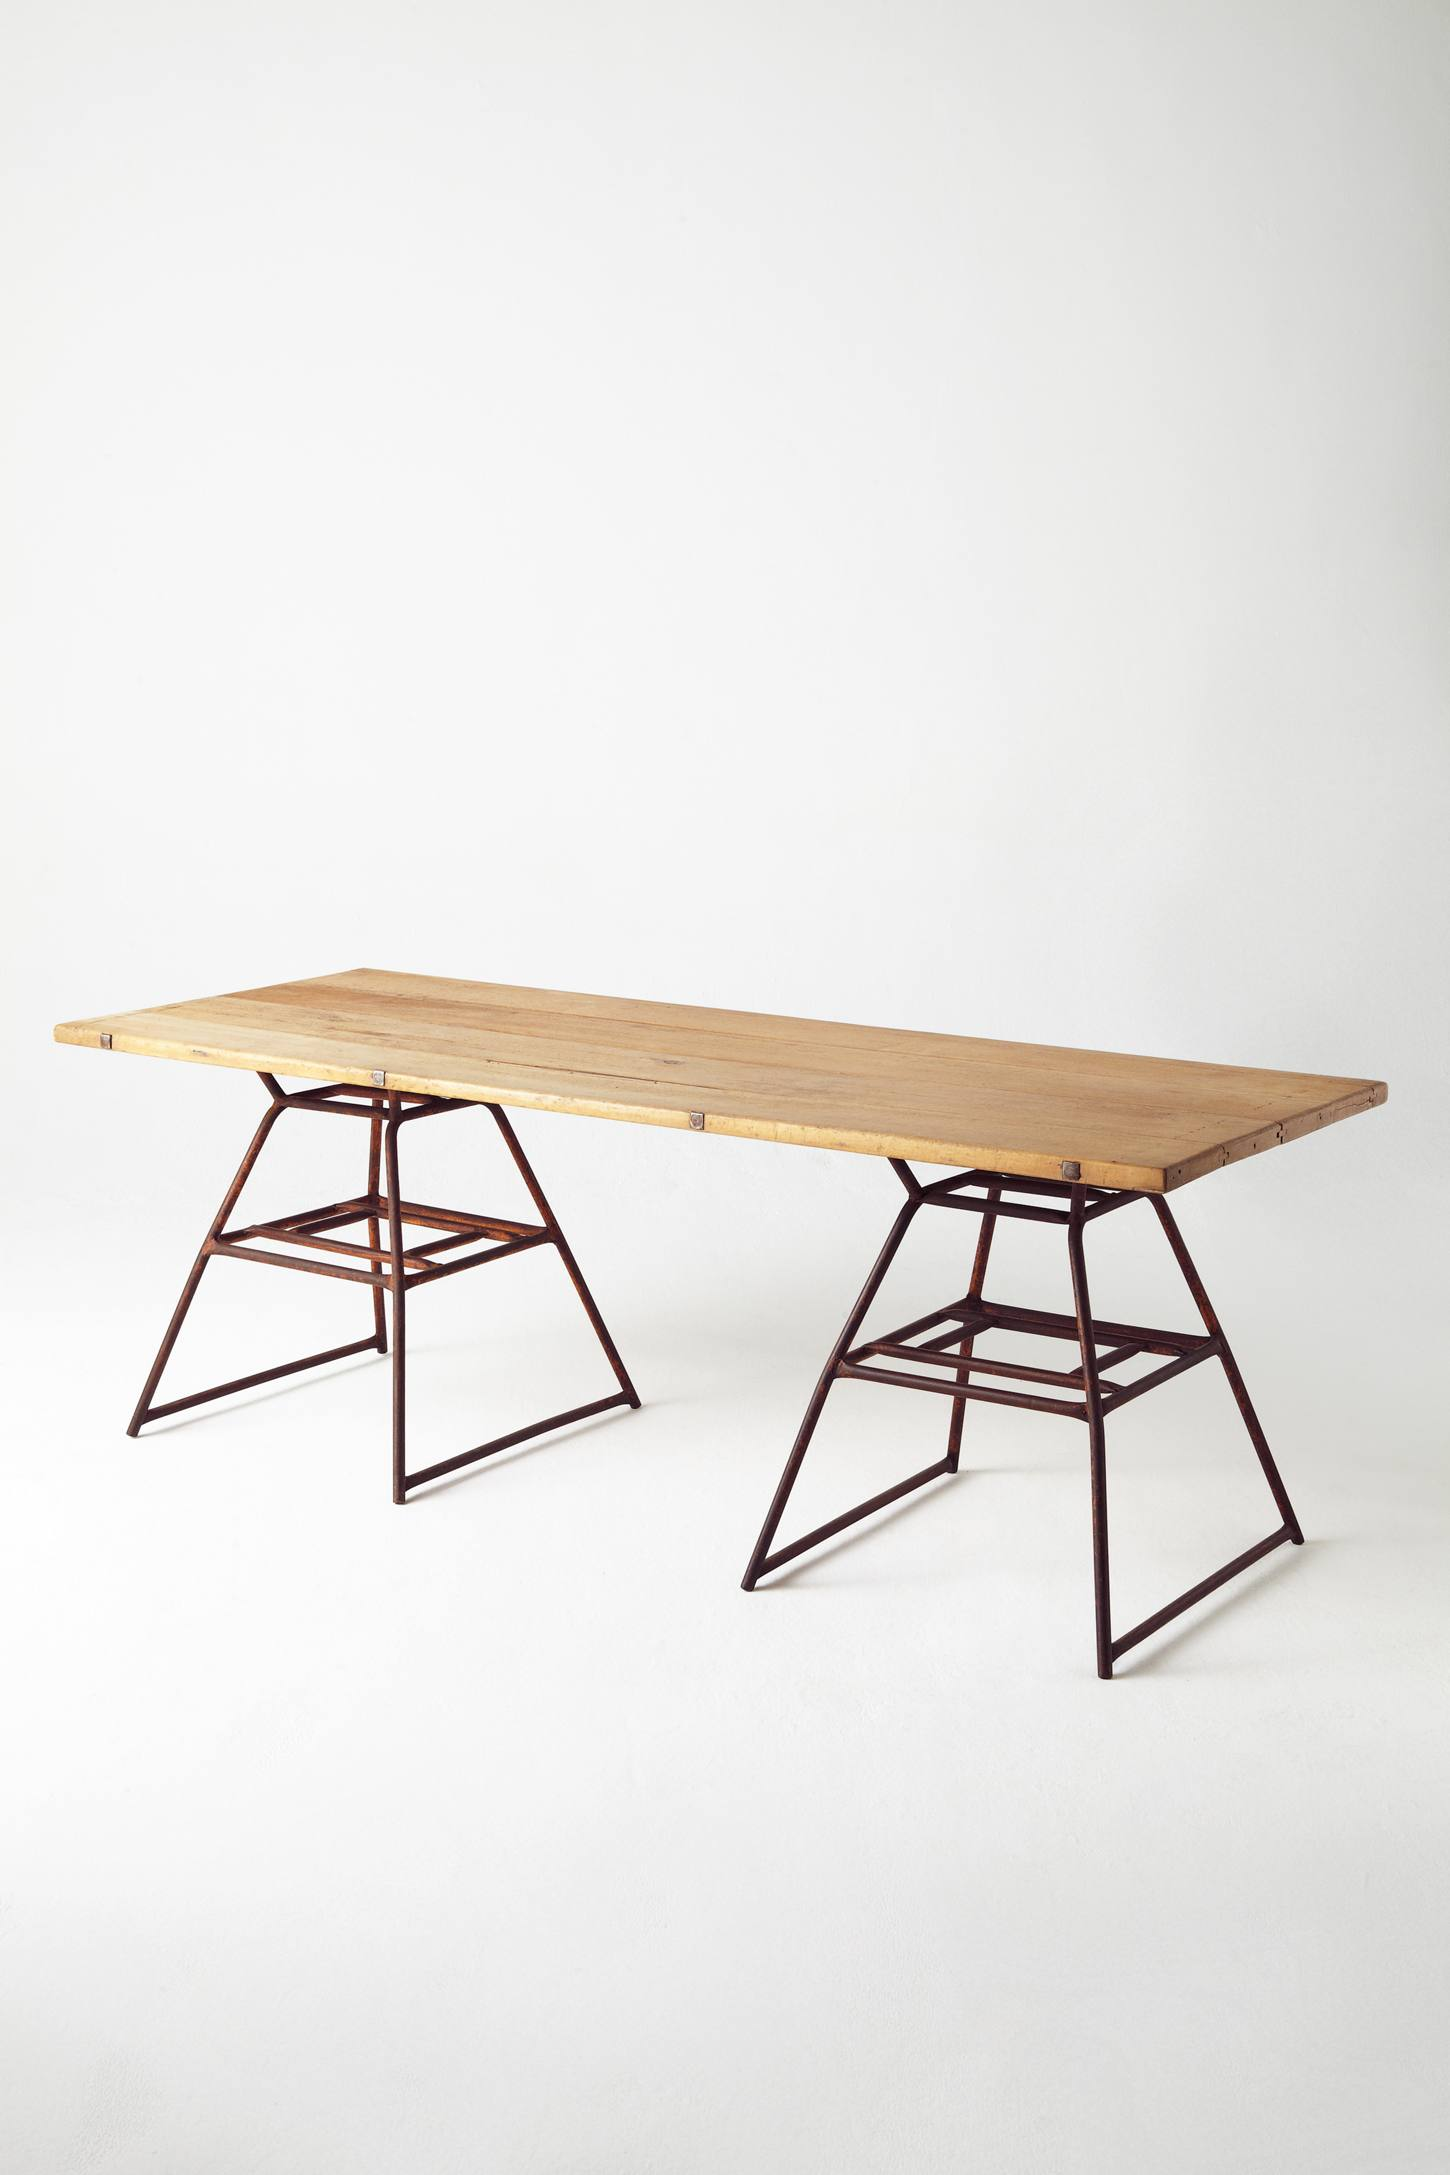 Minimalist Table Minimalist Table Anthropologie